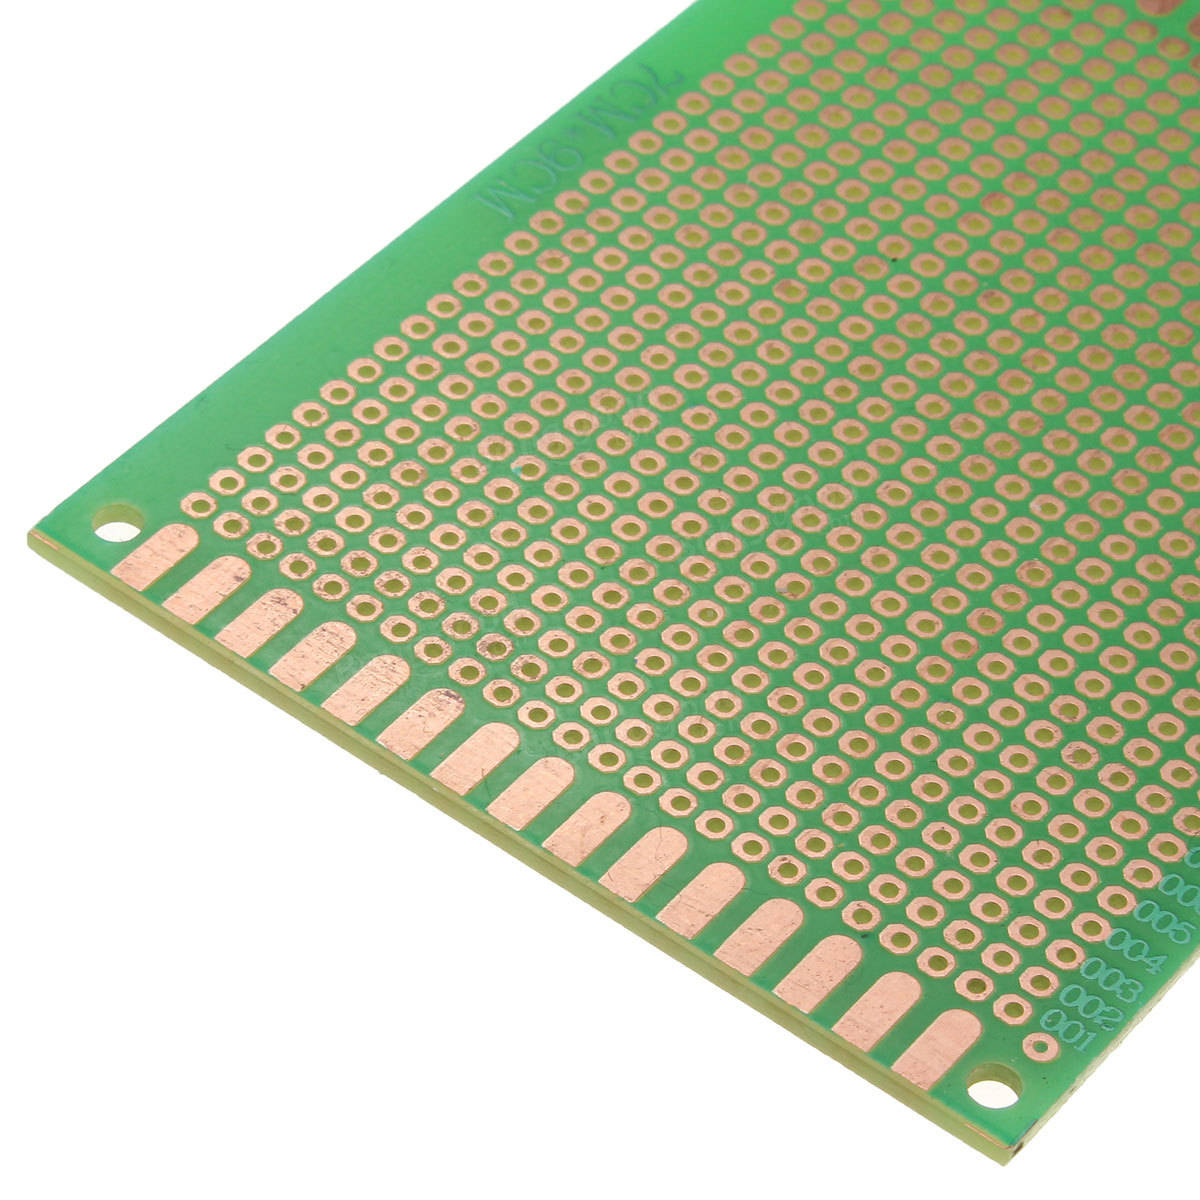 Printed Circuit Board Universal Guide And Troubleshooting Of Filemouse Component Side Img 0952 Djpg 70x90mm Single Pcb Rectangle Diy Prototyping Sale Banggood Com Honeywell Prototype Boards